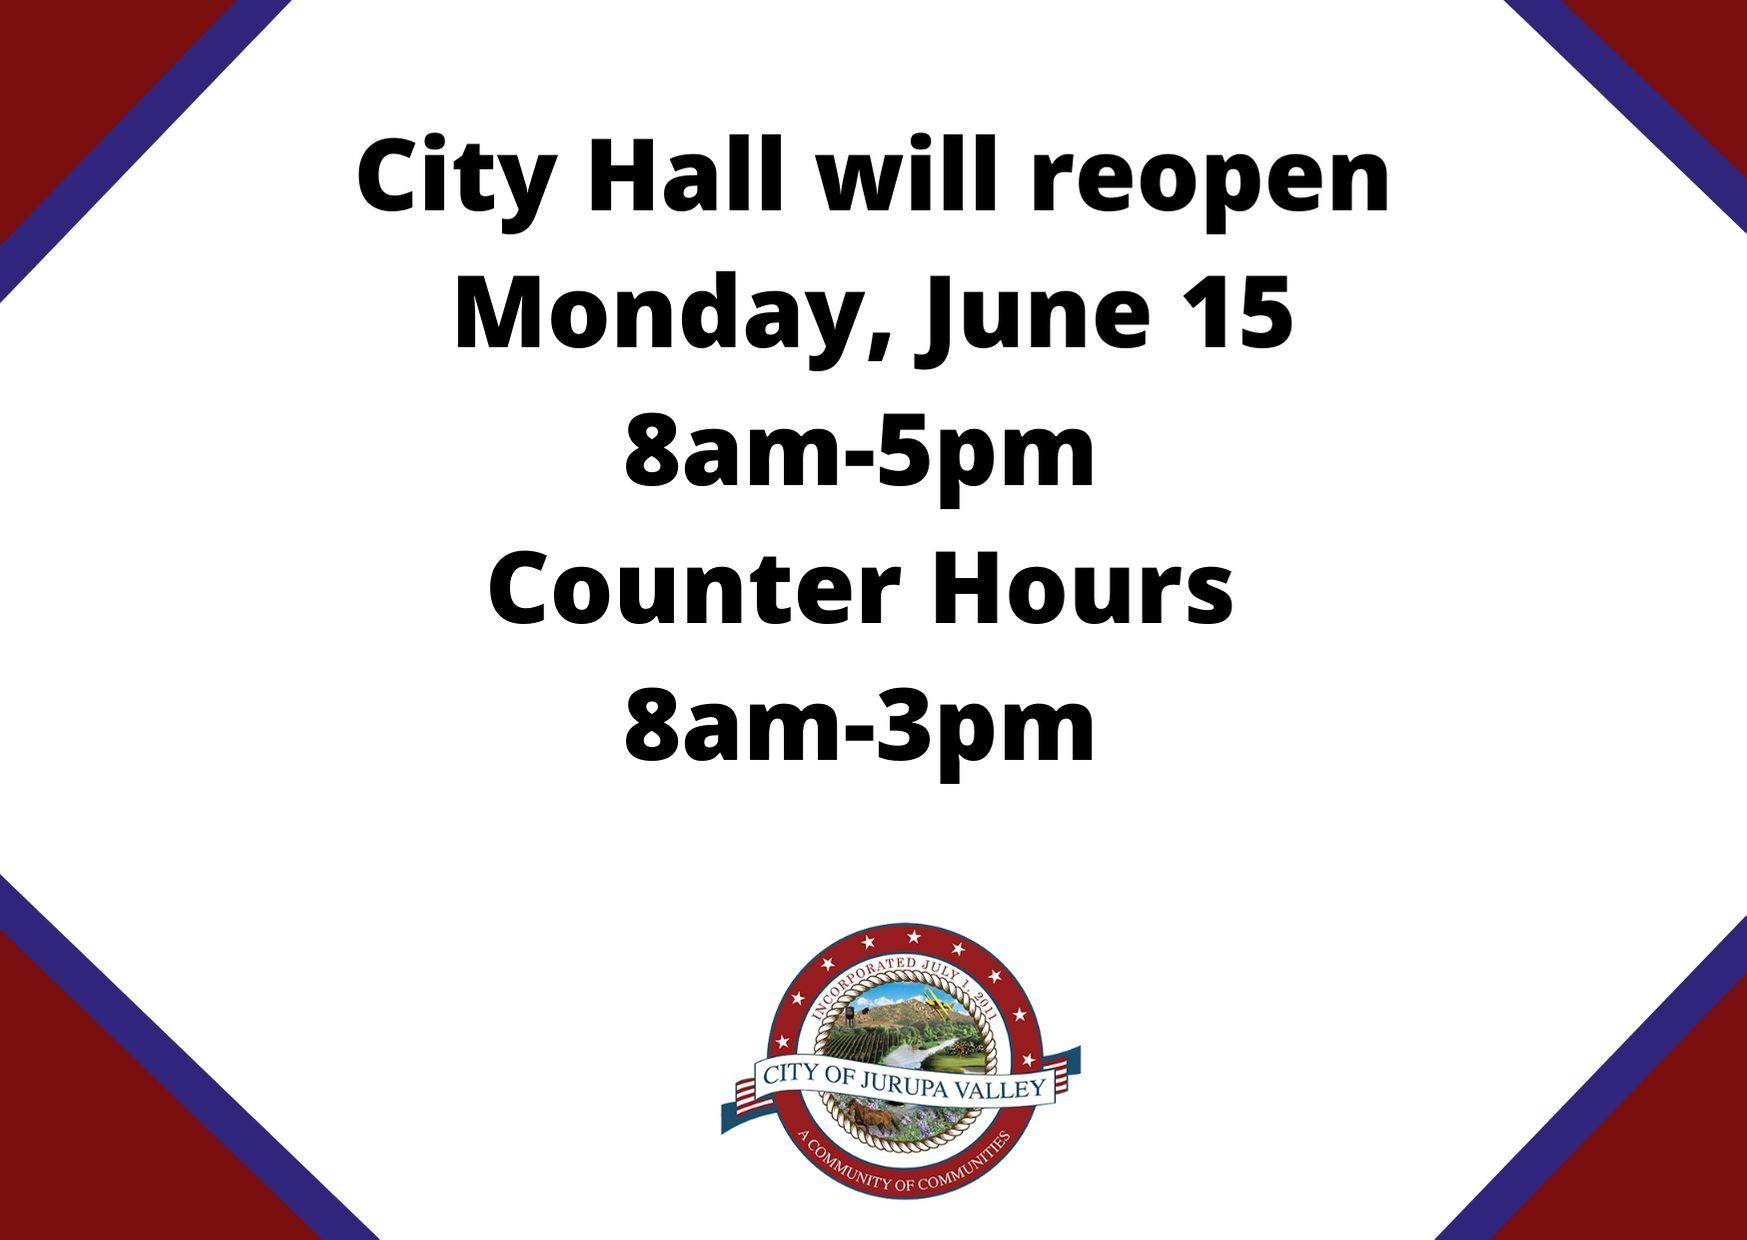 City Hall will reopen